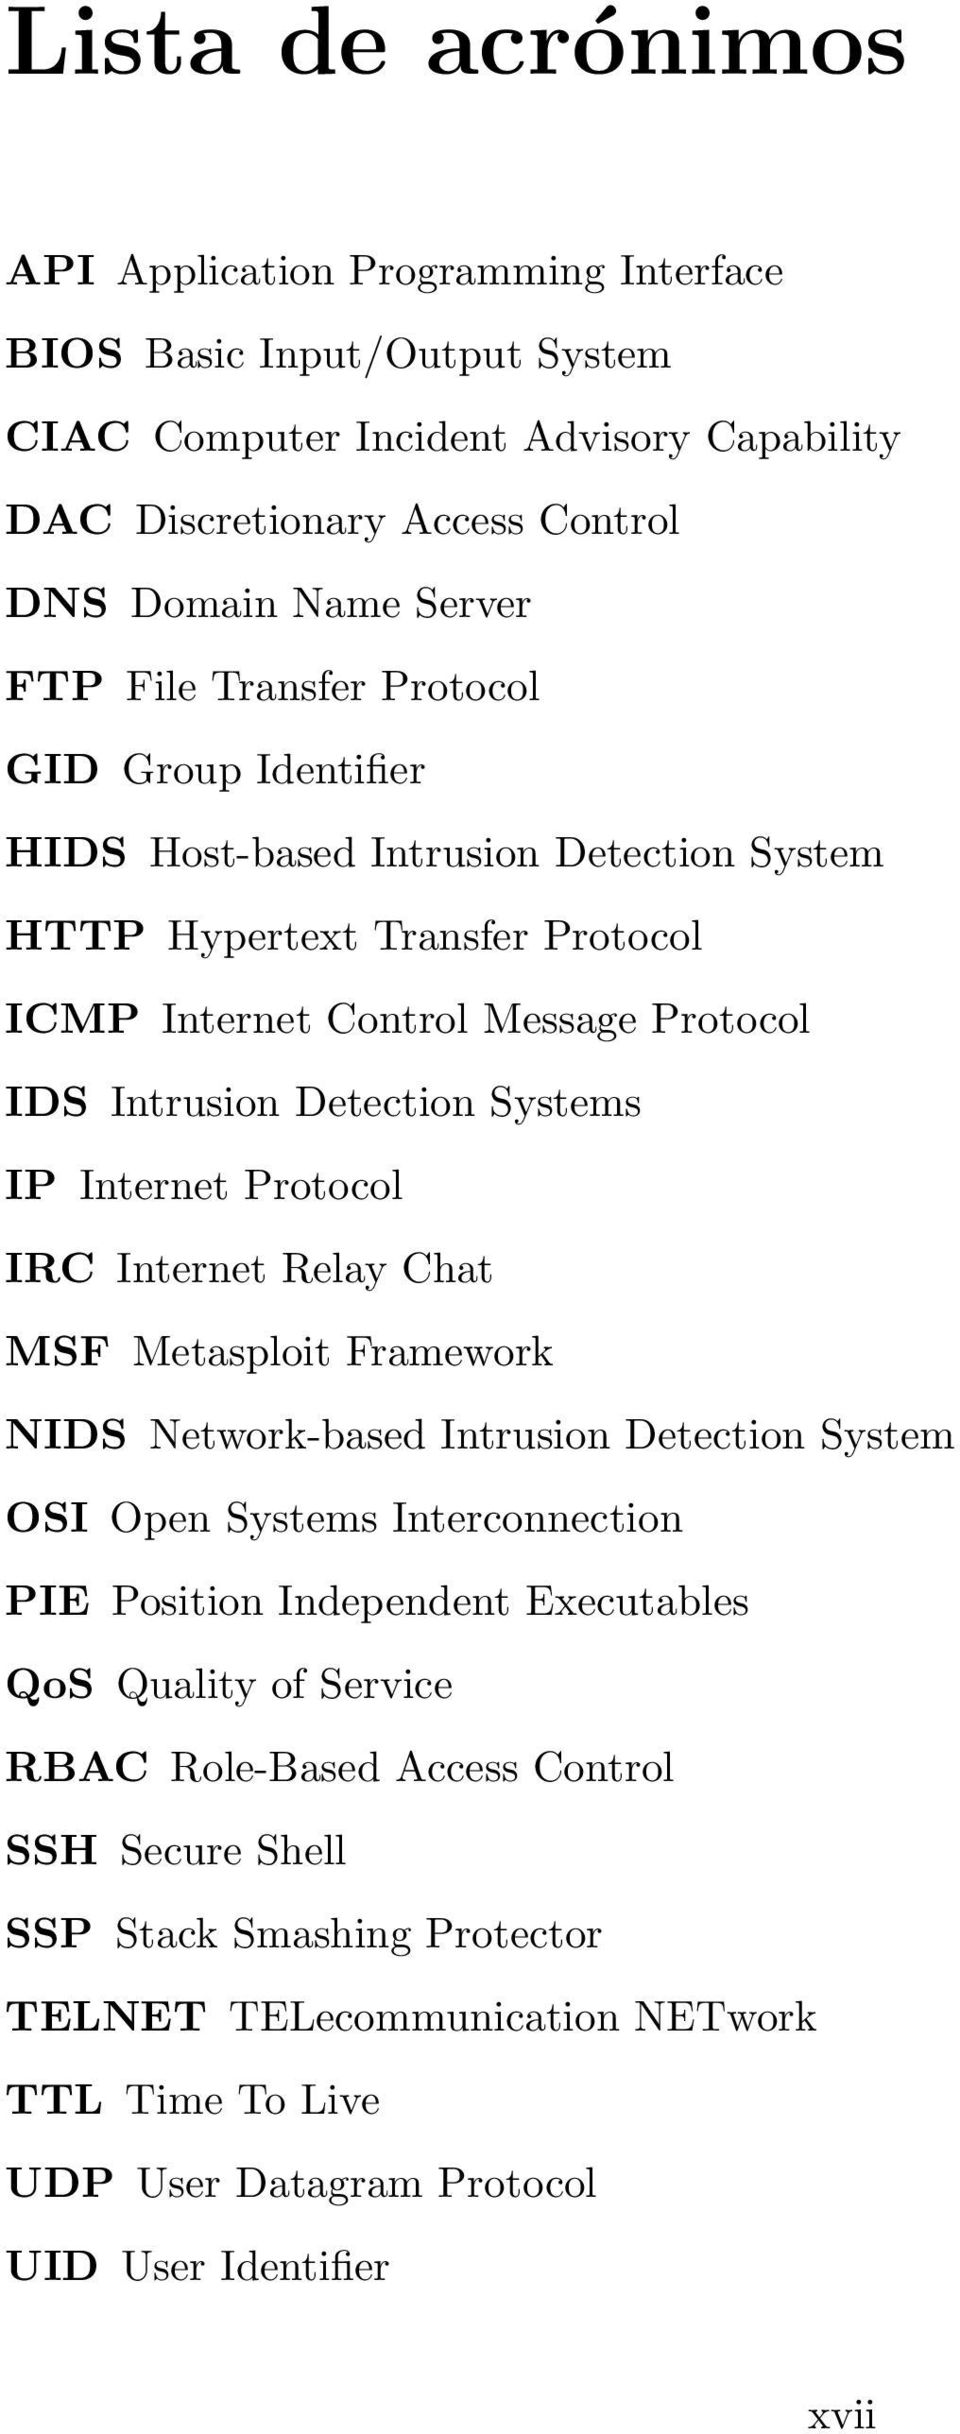 IP Internet Protocol IRC Internet Relay Chat MSF Metasploit Framework NIDS Network-based Intrusion Detection System OSI Open Systems Interconnection PIE Position Independent Executables QoS